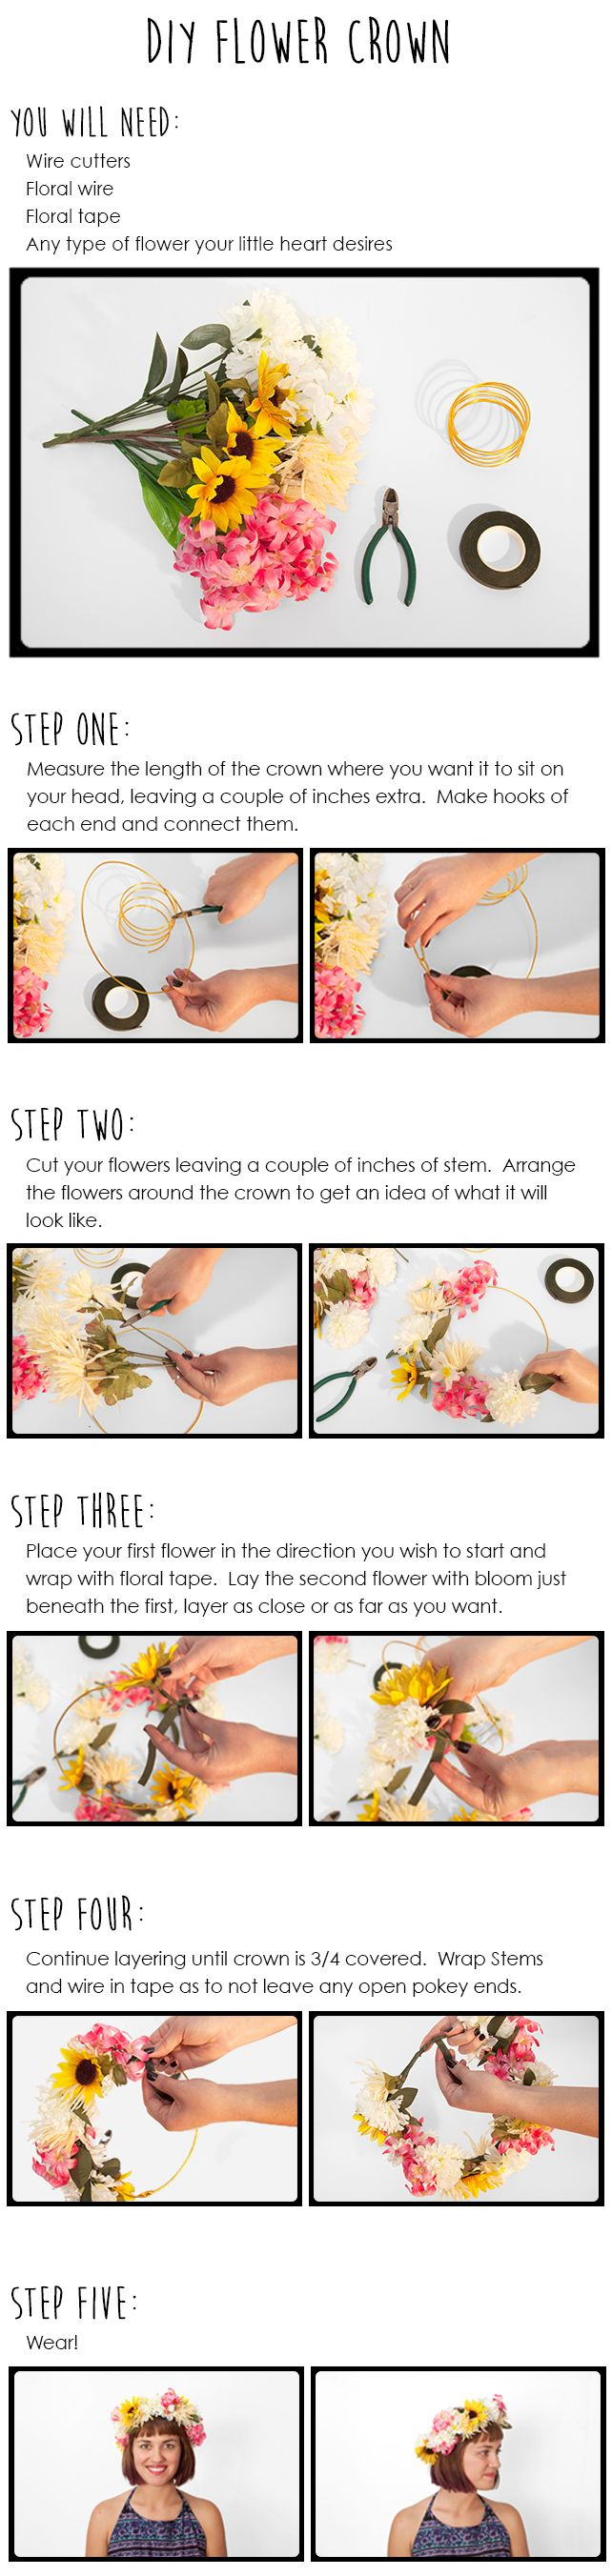 DIY Festival Flower Crown Tutorial